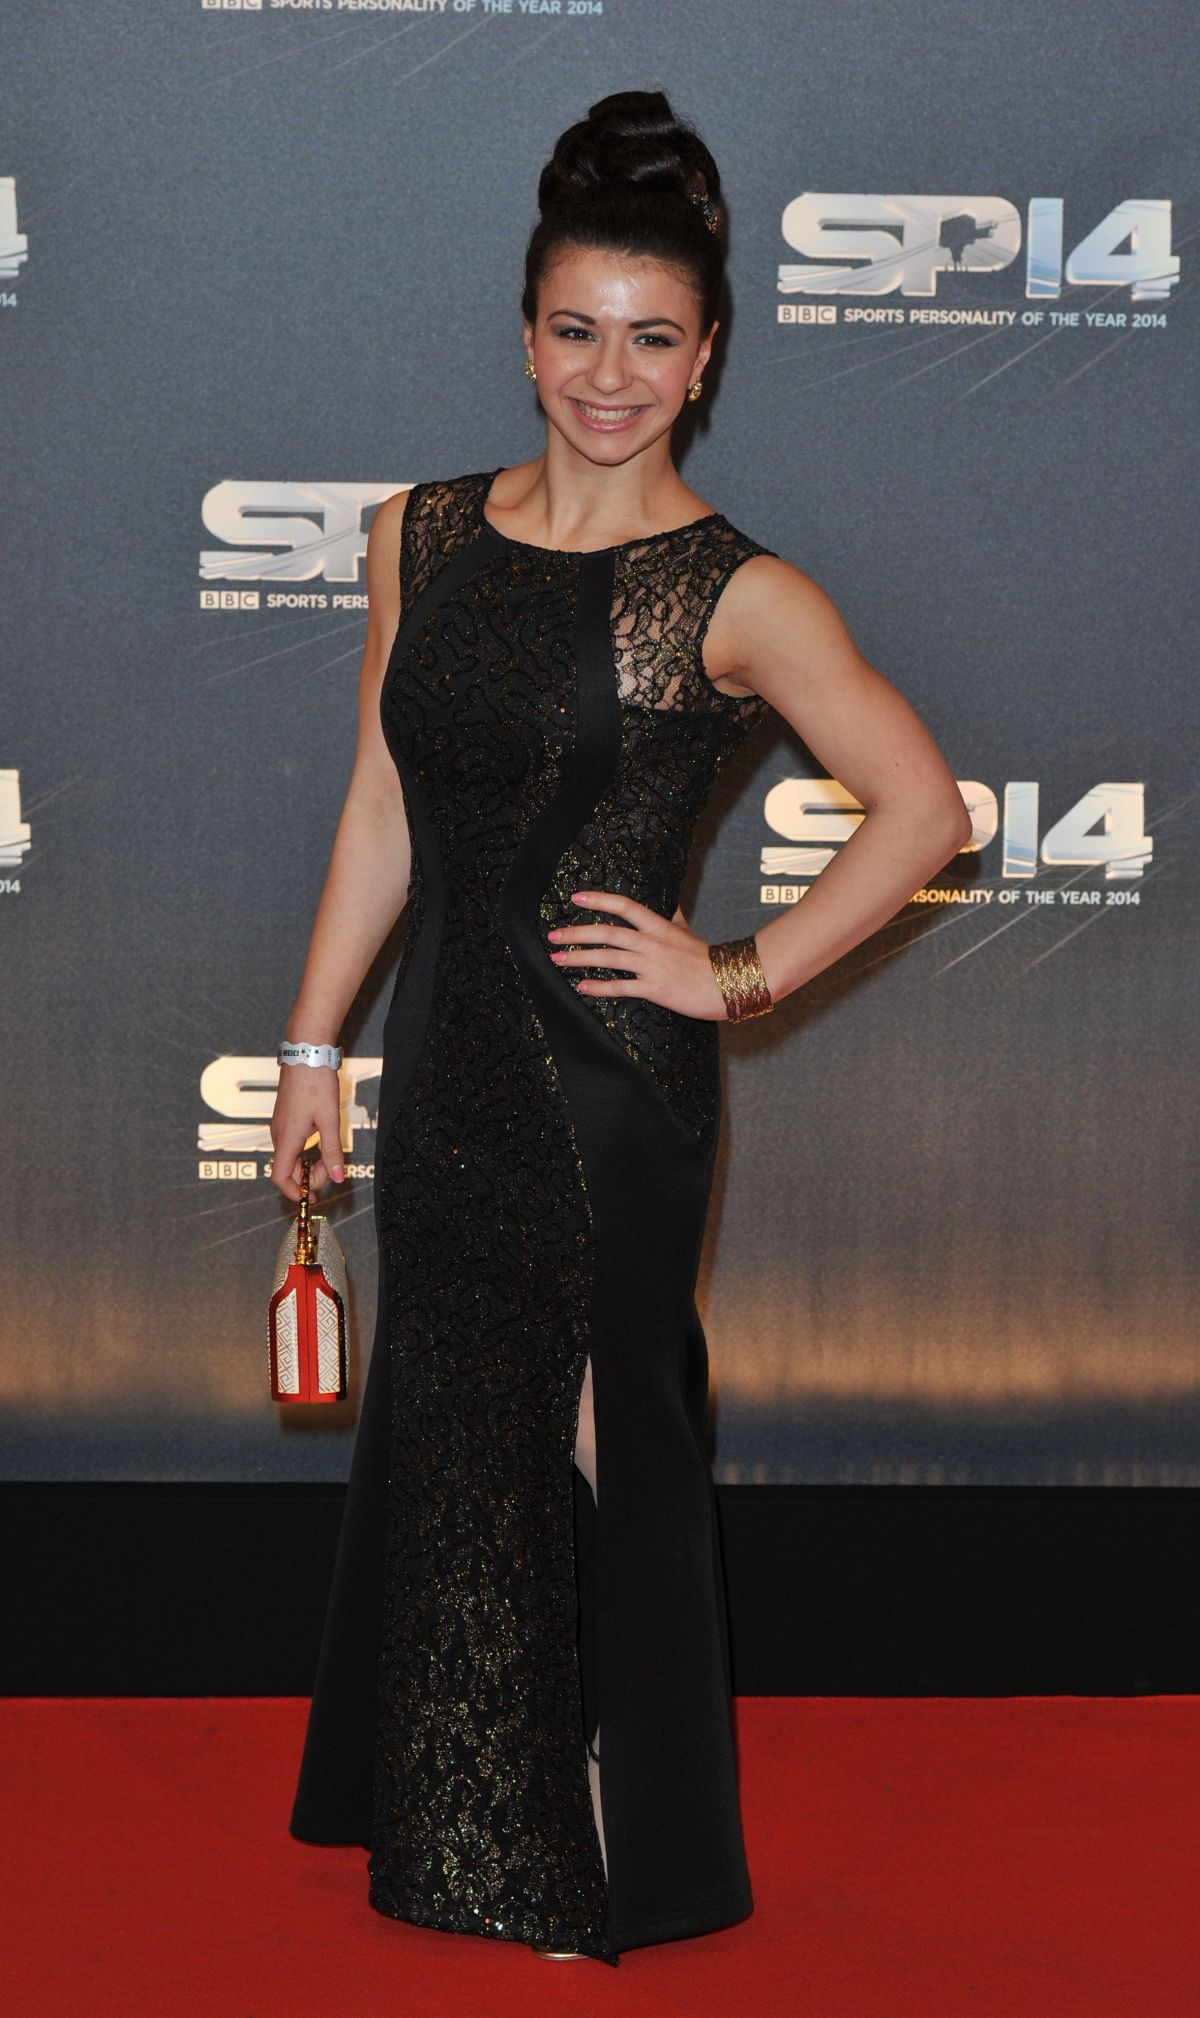 CLAUDIA FRAGAPANE at BBC Sports Personality of the Year Awards in Glasgow